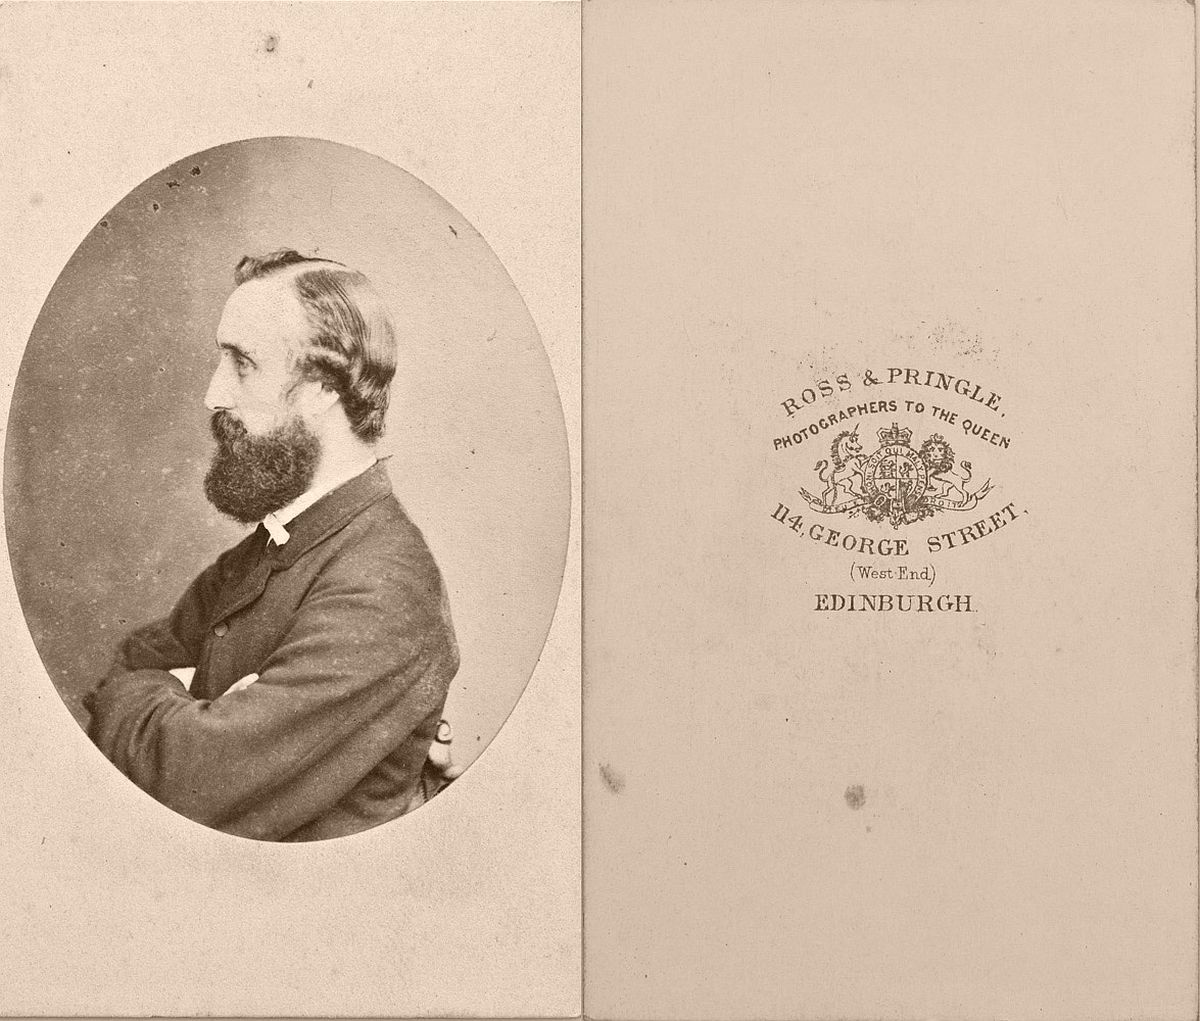 historic-19th-century-cabinet-card-portraits-with-reverse-side-1870s-to-1880s-09